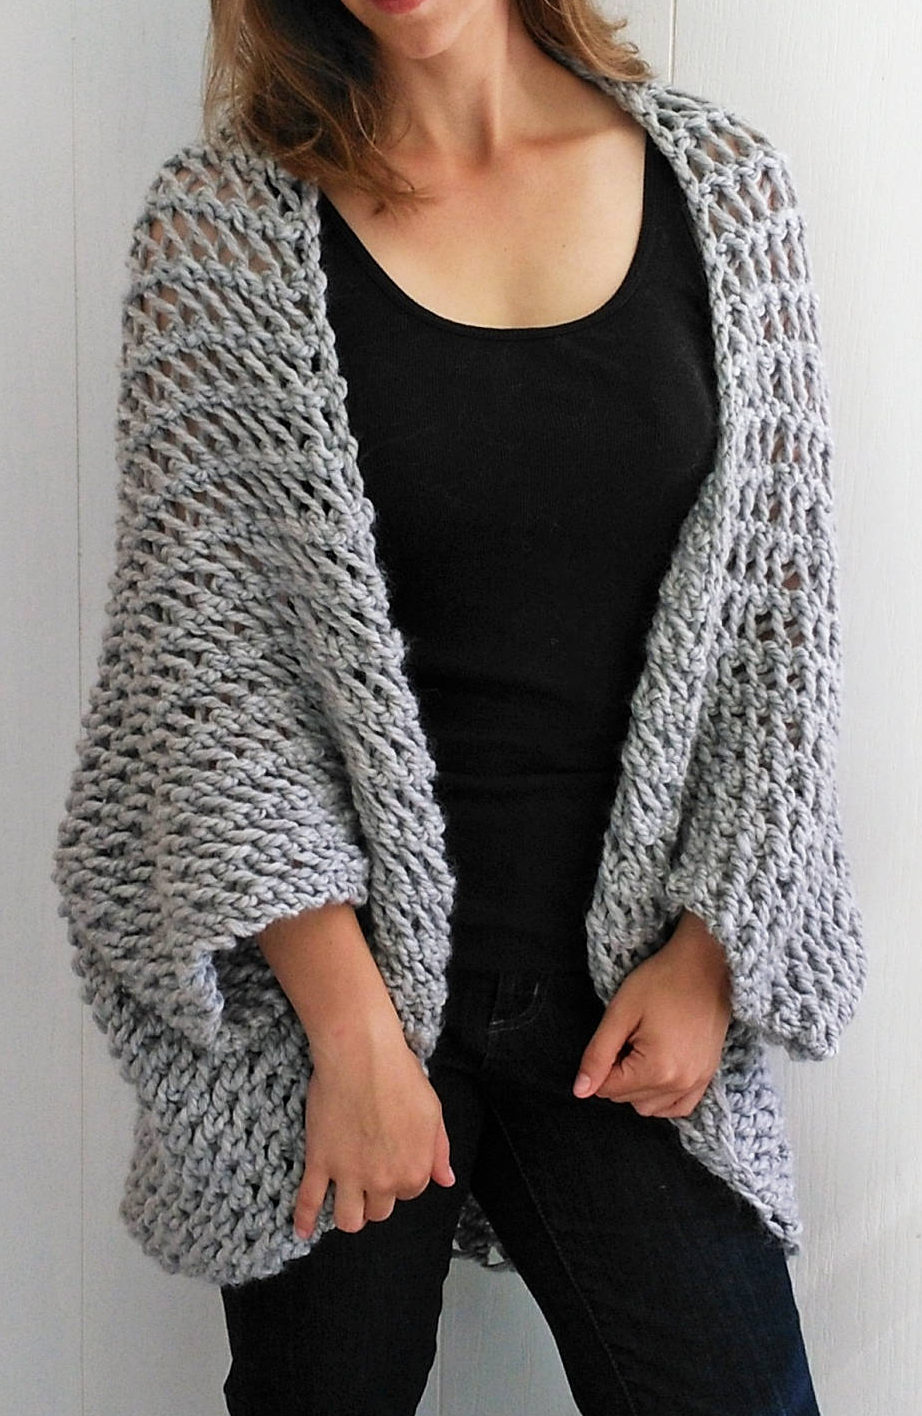 Easy Cardigan Knitting Patterns In The Loop Knitting